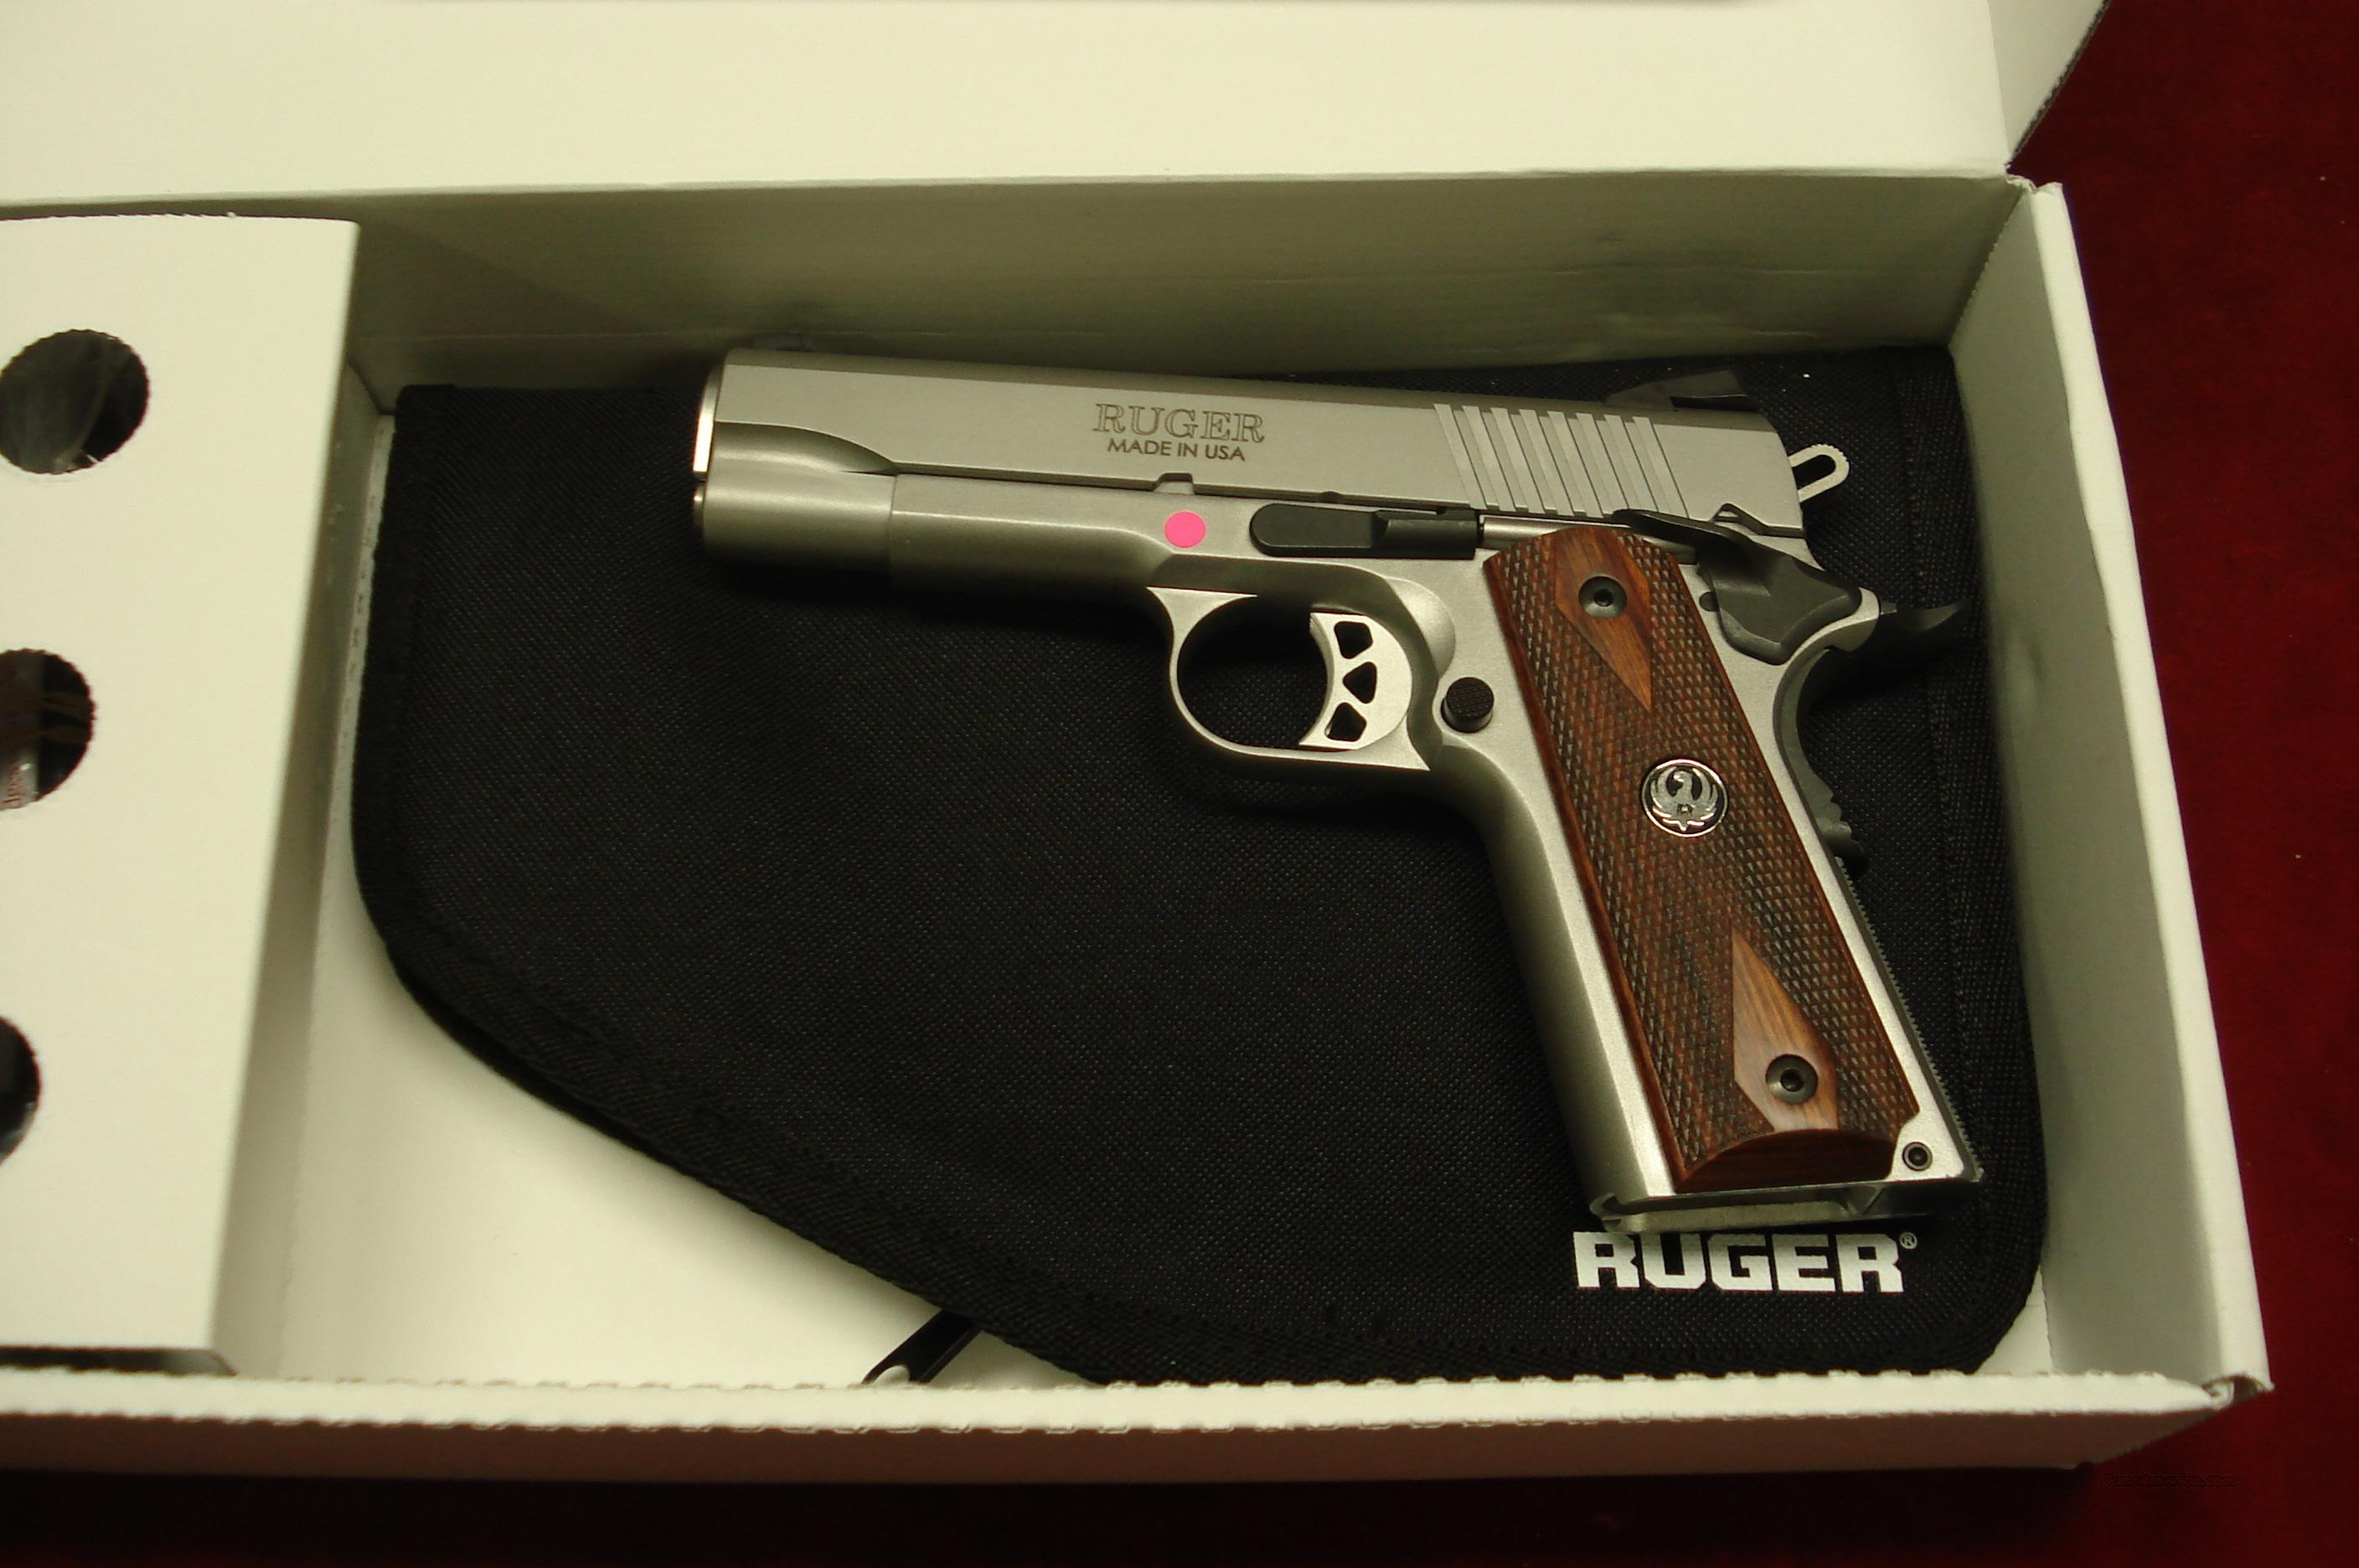 RUGER SR1911 COMMANDER STAINLESS 45ACP NEW  Guns > Pistols > Ruger Semi-Auto Pistols > SR9 & SR40